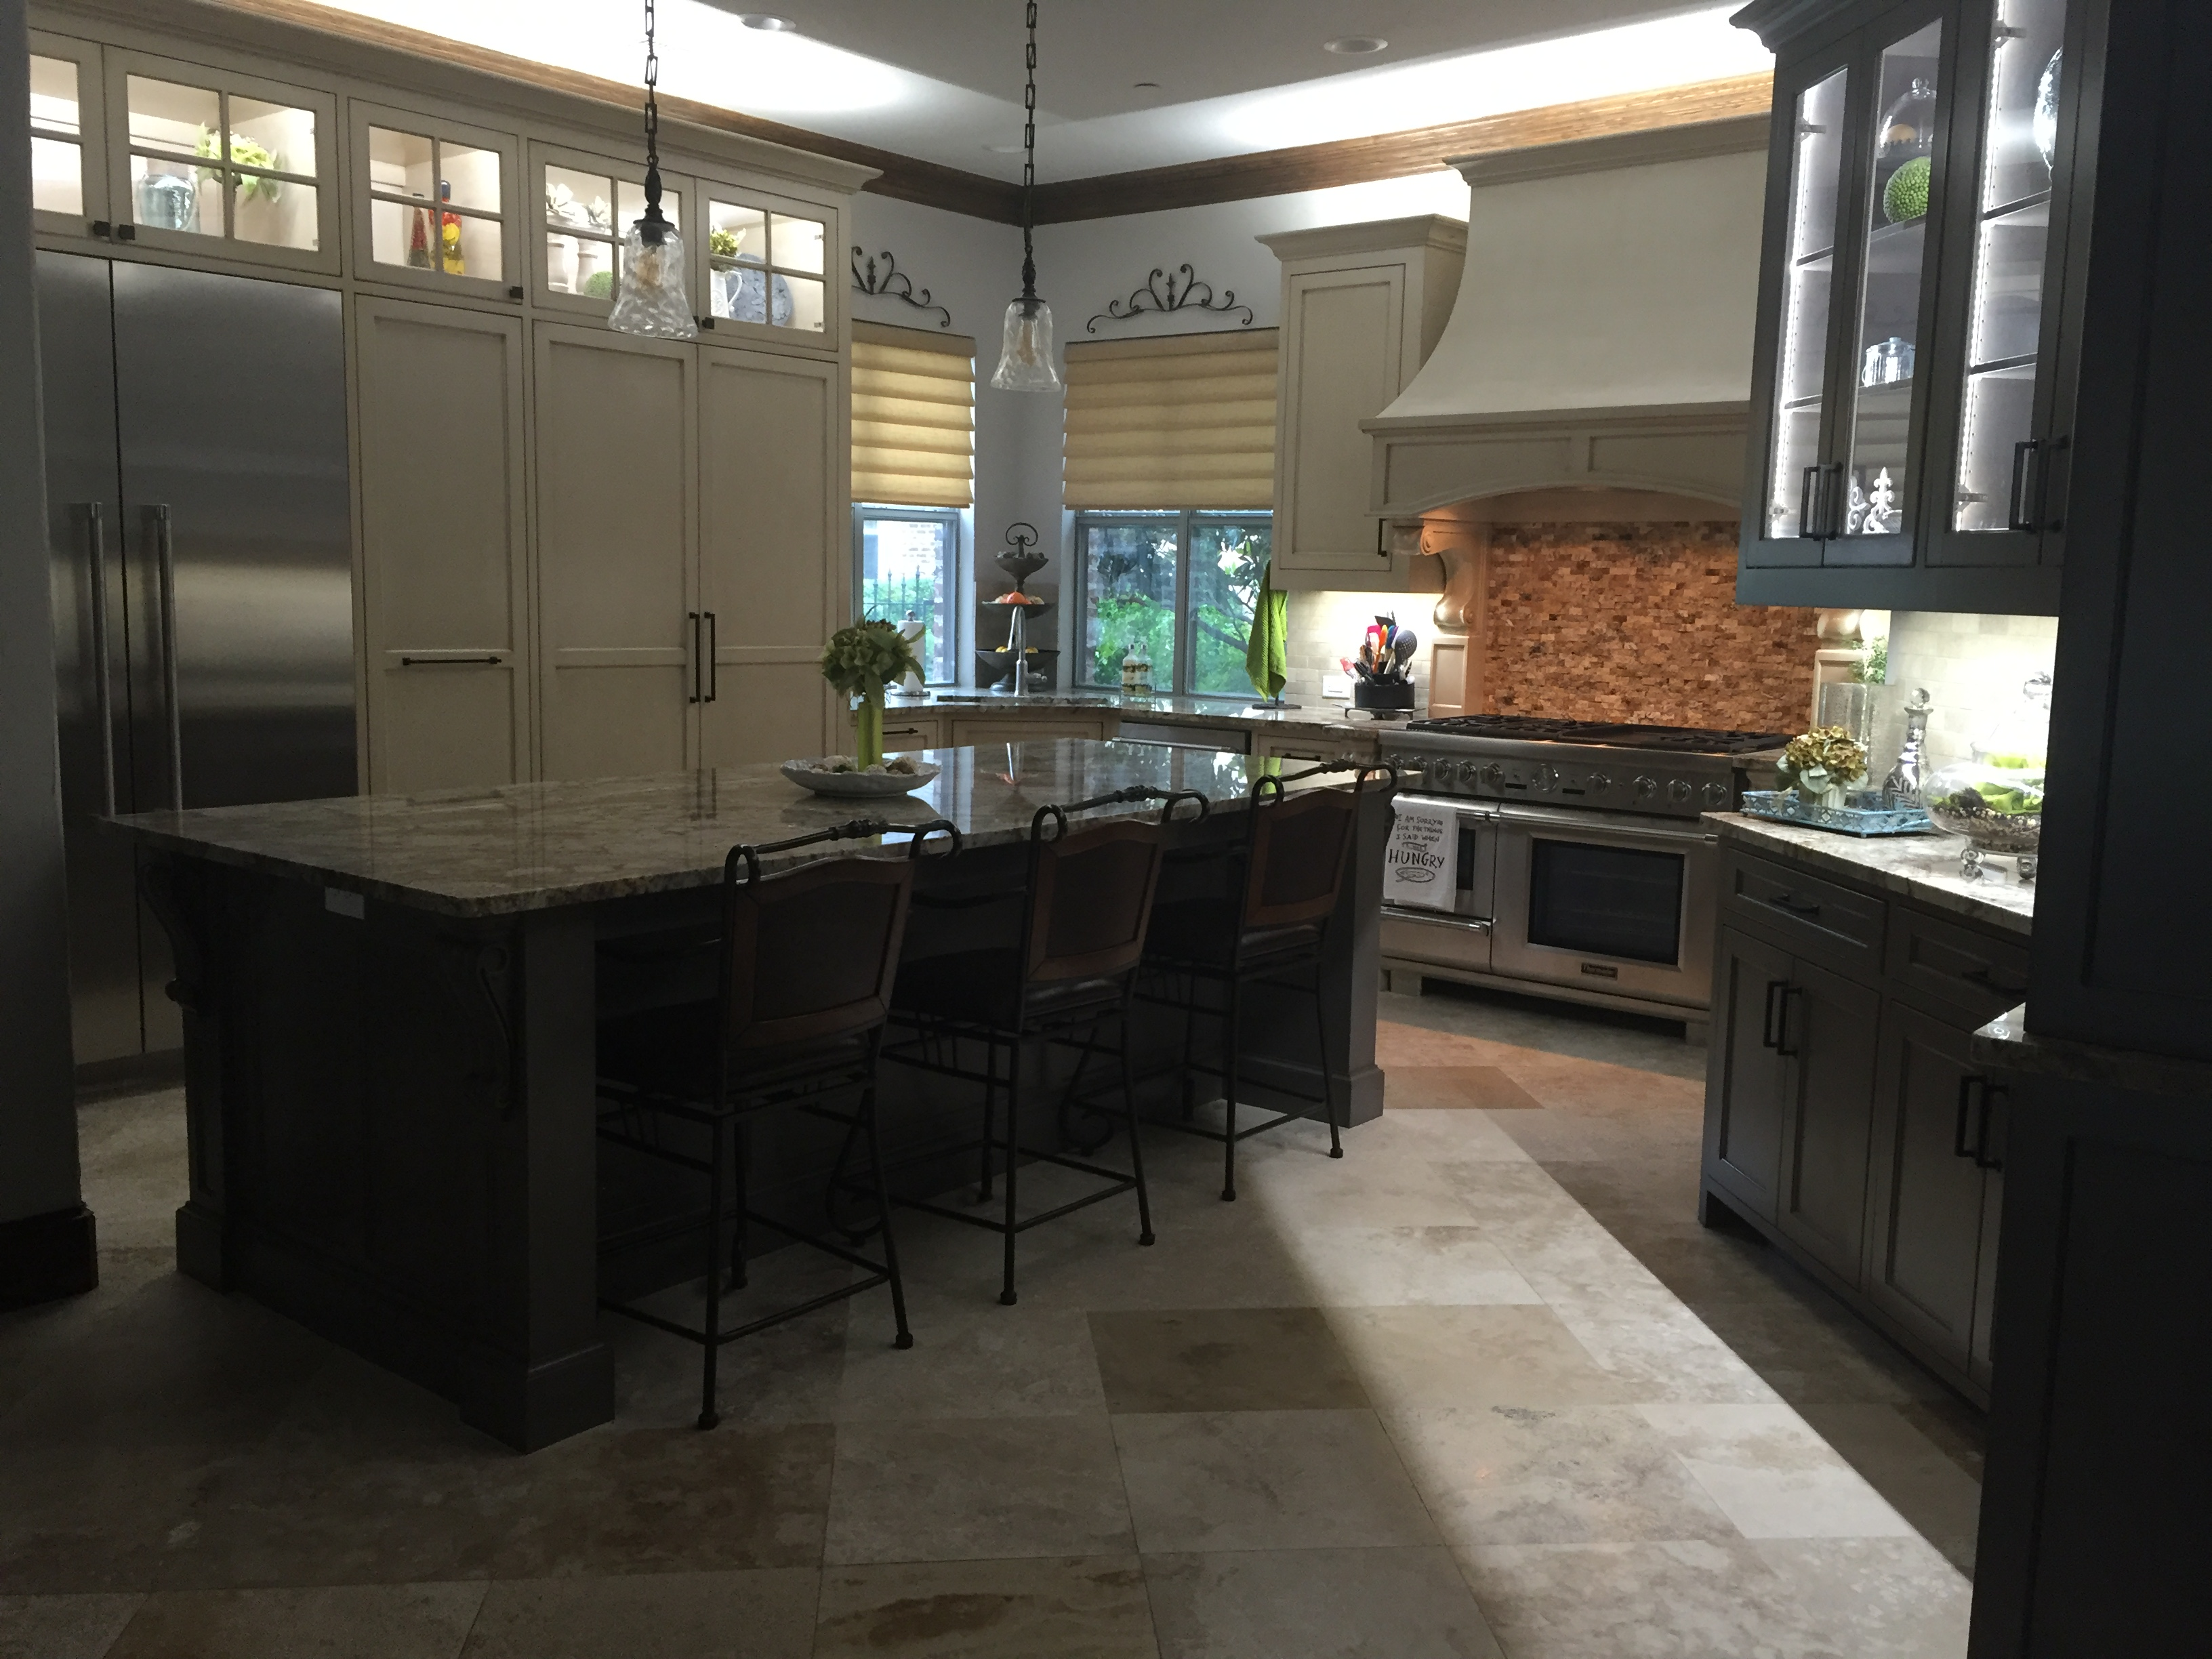 Design Firm Kitchen And Bath Specialists